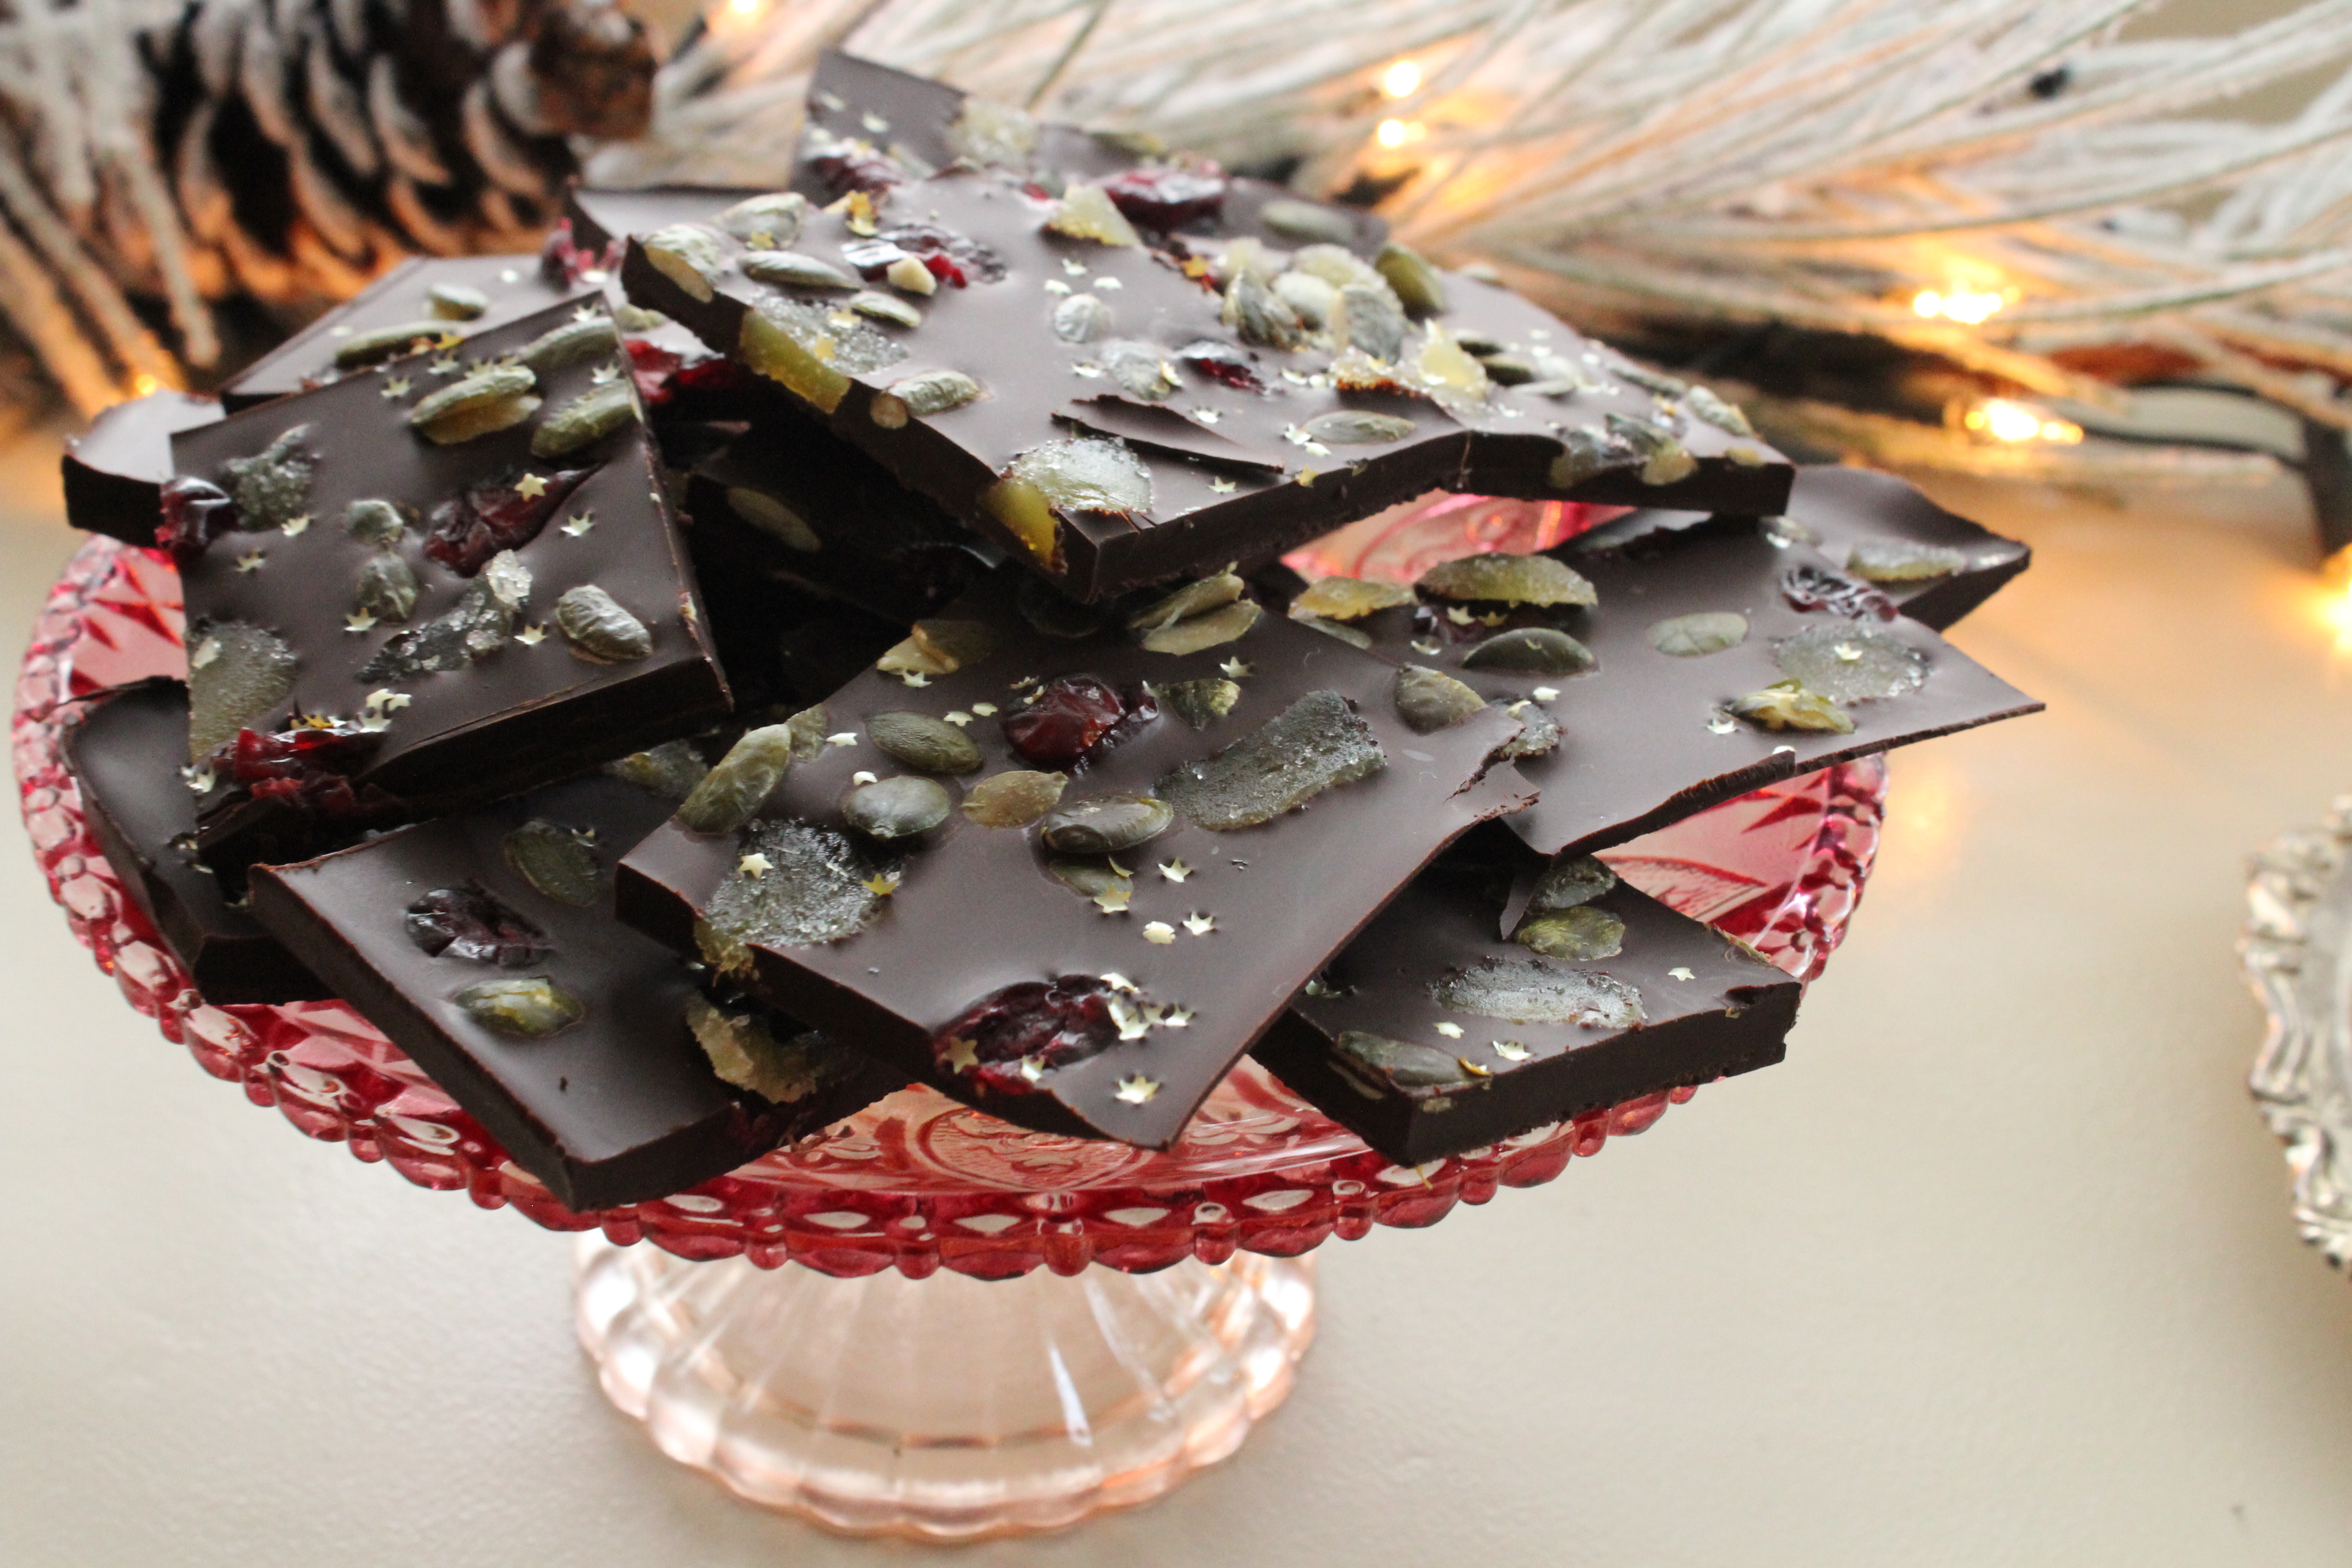 Chocolate Bark with Ginger, Cranberries and Pumpkin seeds